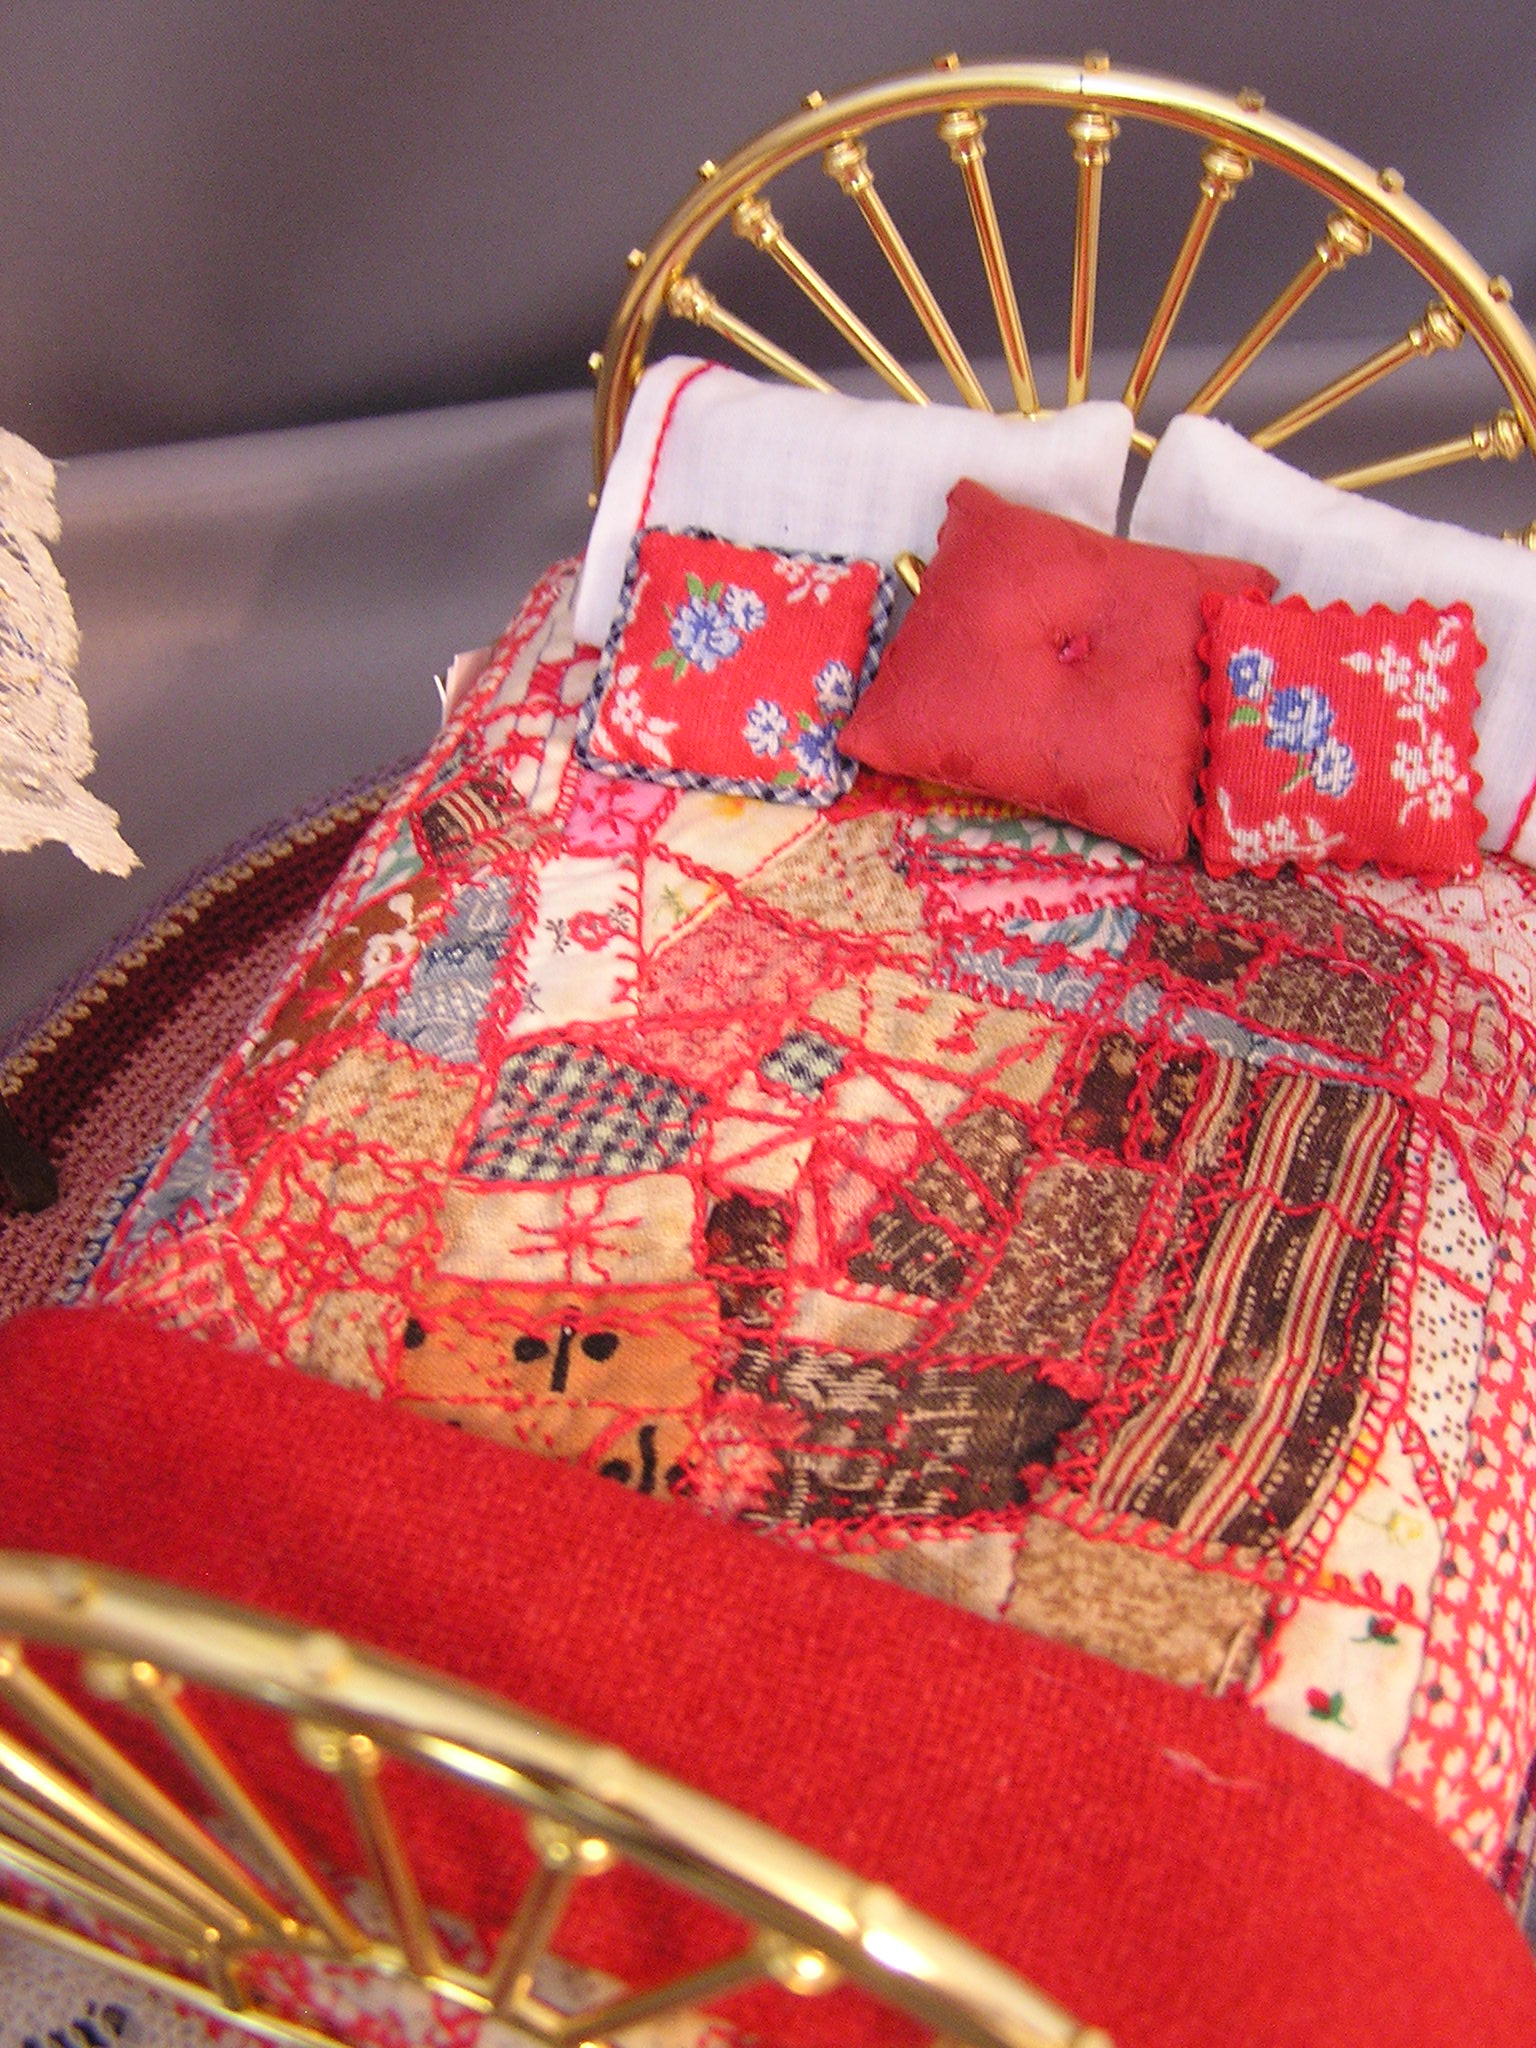 Basic Soft Red Throw Pillow